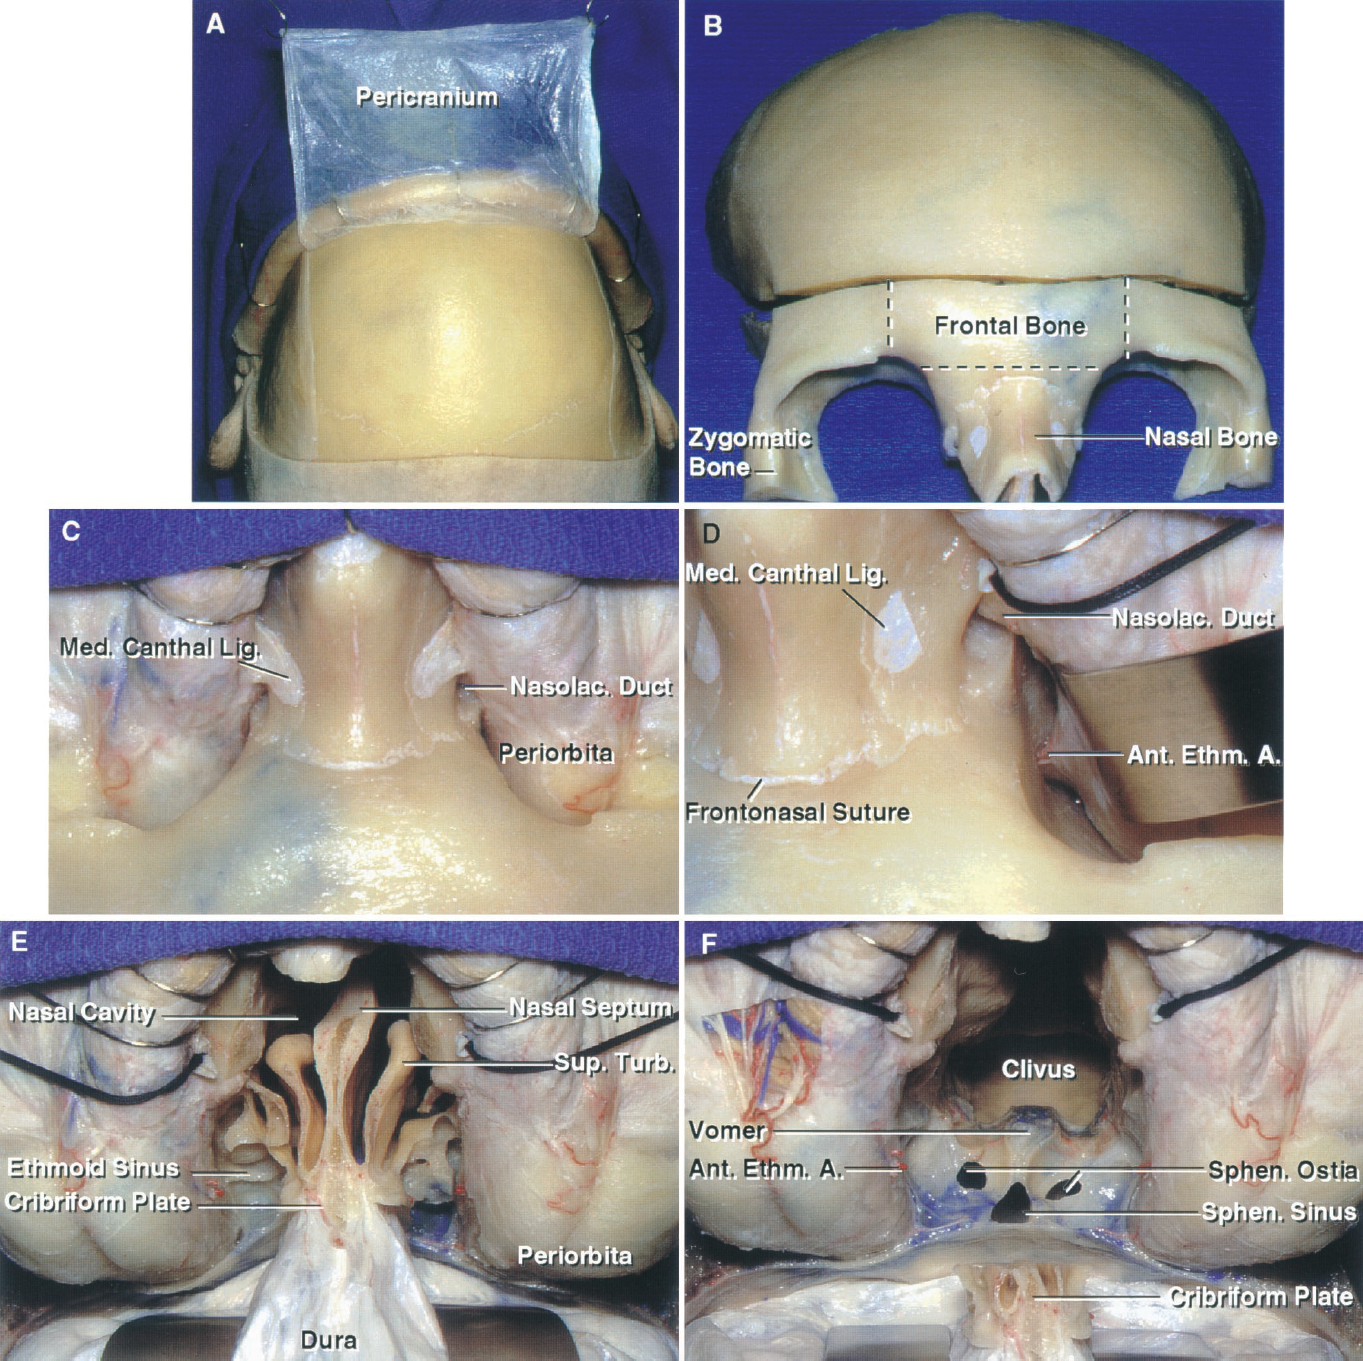 FIGURE 6.19. A–F. Relationships in the transbasal and extended frontal approaches. A, a bicoronal scalp flap has been reflected forward. The pericranium is commonly reflected as a separate layer for later use in closing the floor of the anterior cranial fossa. B, bone flap and osteotomy. The transcranial-transbasal approach uses only a bifrontal craniotomy bordering the floor of the anterior cranial fossae without the osteotomy. A large bifrontal craniotomy and a fronto-orbitozygomatic osteotomy have been completed. The osteotomized segment may extend through the nasal bone and lateral orbital rim, but for most clival lesions a more limited bone flap and osteotomy (dotted lines) will usually suffice and can be tailored as needed to deal with involvement of the nasal cavity, paranasal sinuses, or orbit. C, the periorbita has been separated from the walls of the orbit in preparation for the osteotomies. Division of the medial canthal ligament is not necessary for most lesions, but may be required for lesions extending into the lower nasal cavity or orbit. The ligaments should be re-approximated at the end of the procedure. D, the right medial canthal ligament has been divided and the orbital contents retracted laterally to expose the nasolacrimal duct and the anterior ethmoidal branch of the ophthalmic artery at the anterior ethmoidal foramen. E, the osteotomies have been completed and the frontal dura elevated. The dura remains attached at the cribriform plate. The upper part of both orbits are exposed. F, an osteotomy around the cribriform plate leaves it attached to the dura and olfactory bulbs, a maneuver that has been attempted to preserve olfaction, but is infrequently successful. The anterior face of the sphenoid sinus and both sphenoid ostia are exposed between the orbits. A., artery; A.C.A., anterior cerebellar artery; A.I.C.A., anteroinferior cerebellar artery; Ant., anterior; Bas., basilar; Car., carotid; CN, cranial nerve; Ethm., ethmoidal; Gl., gland; Lam., lamina; Lig., ligament; M.C.A., middle cerebral artery; Med., medial; Nasolac., nasolacrimal; Pit., pituitary; Sphen., sphenoid; Sphenopal., sphenopalatine; Sup., superior; Term., terminalis; Turb., turbinates; Vert., vertebral.